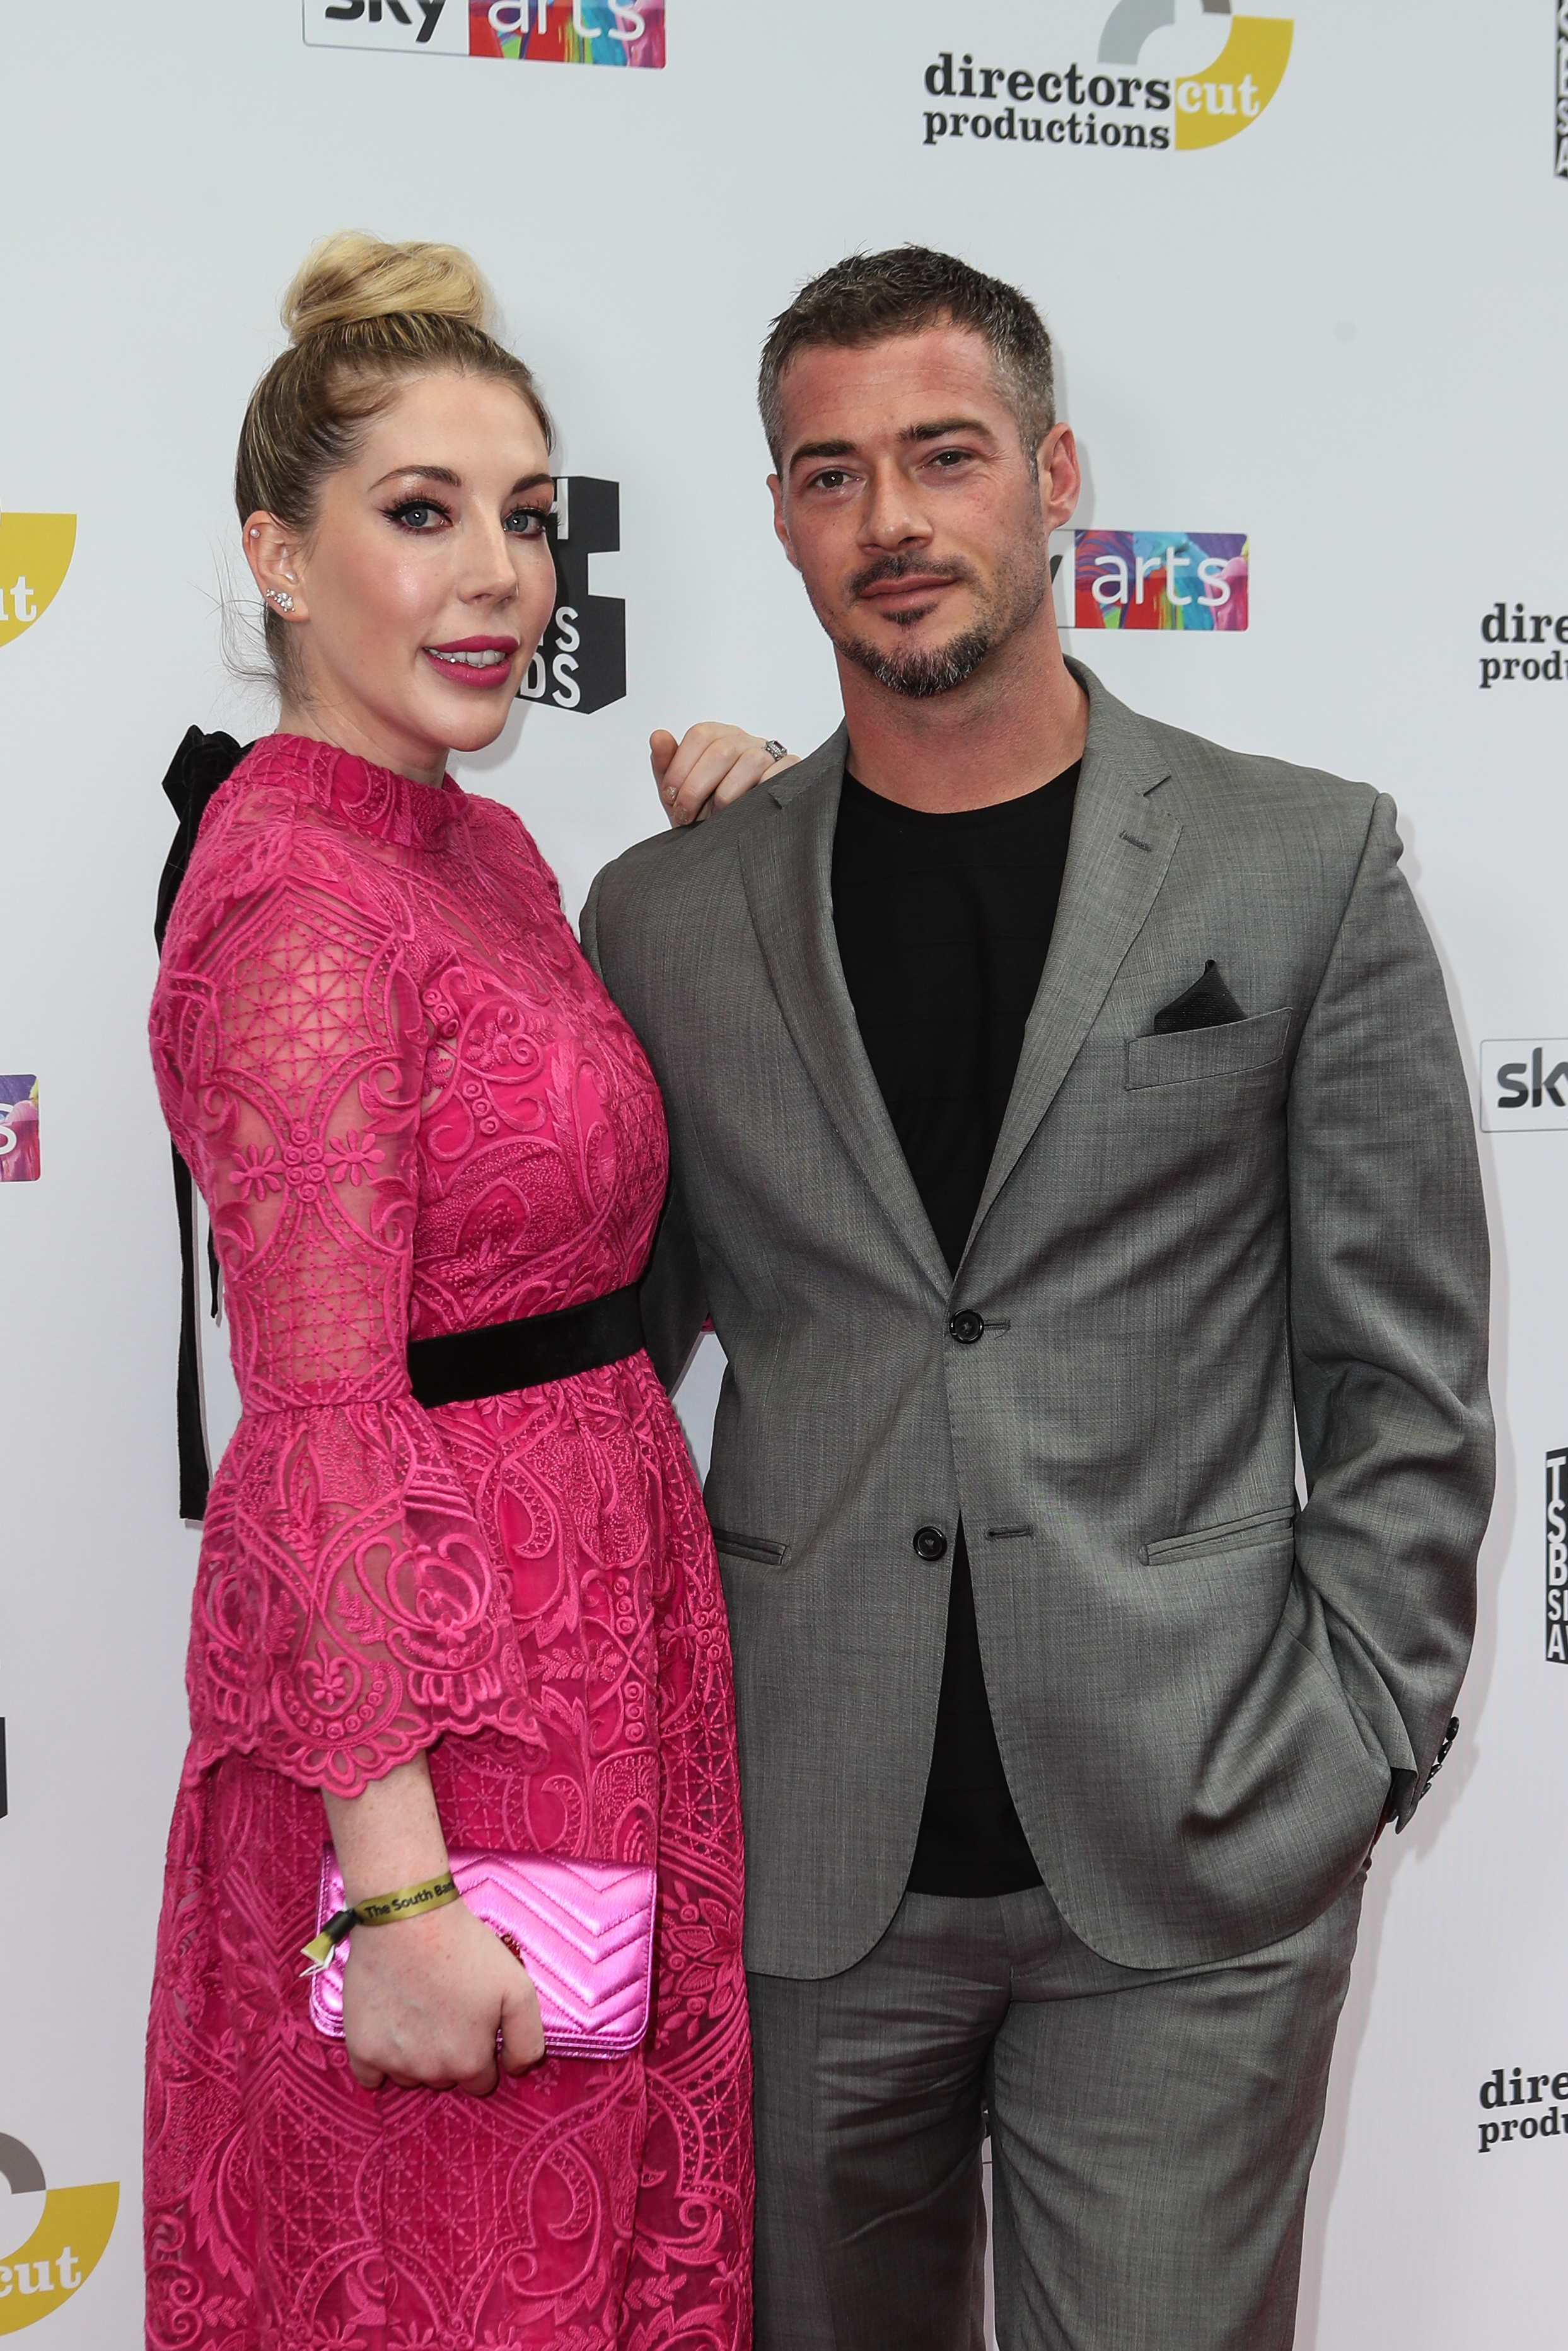 Red carpet arrivals for the 2019 South Bank Sky Arts Awards at The Savoy in London Pictured: Katherine Ryan,Bobby Kootstra Ref: SPL5102571 070719 NON-EXCLUSIVE Picture by: SplashNews.com Splash News and Pictures Los Angeles: 310-821-2666 New York: 212-619-2666 London: +44 (0)20 7644 7656 Berlin: +49 175 3764 166 photodesk@splashnews.com World Rights